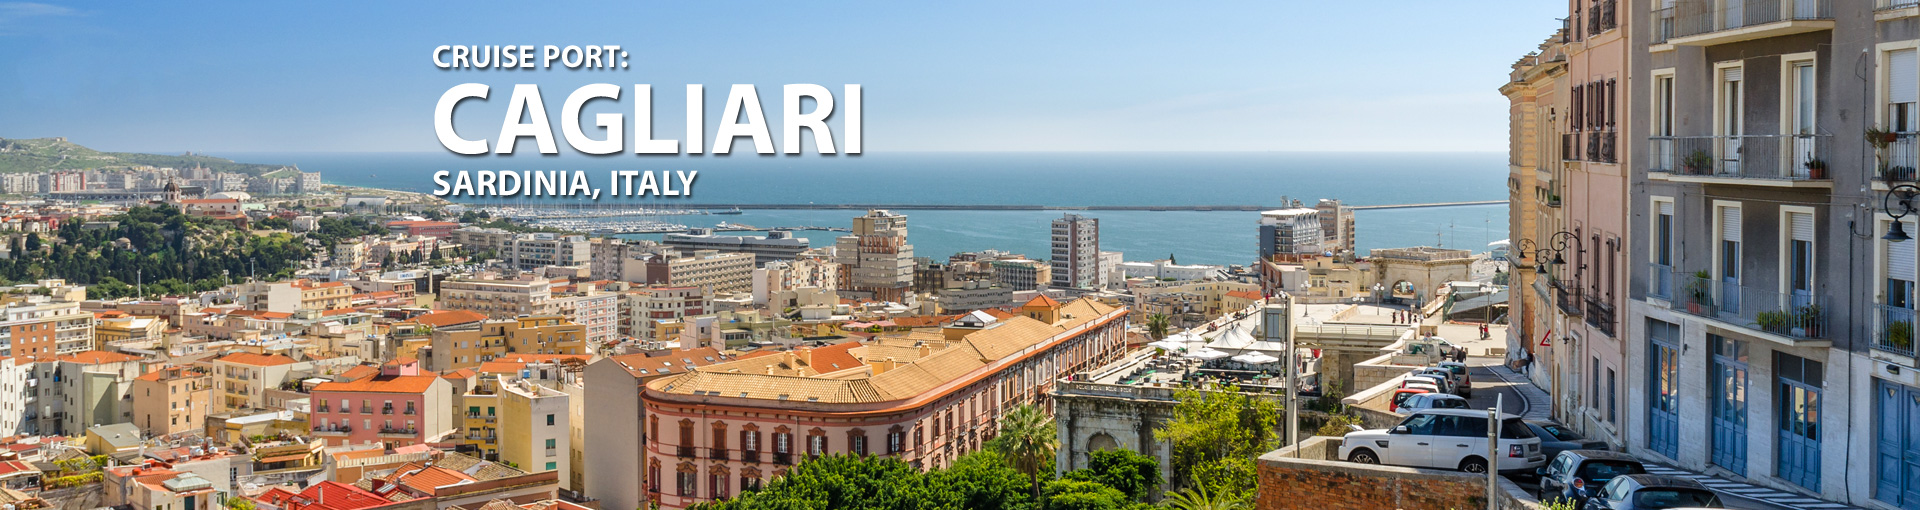 Cagliari Italy  city photos gallery : ... Italy Cruise Port, 2015 and 2016 Cruises to Cagliari, Sardinia, Italy